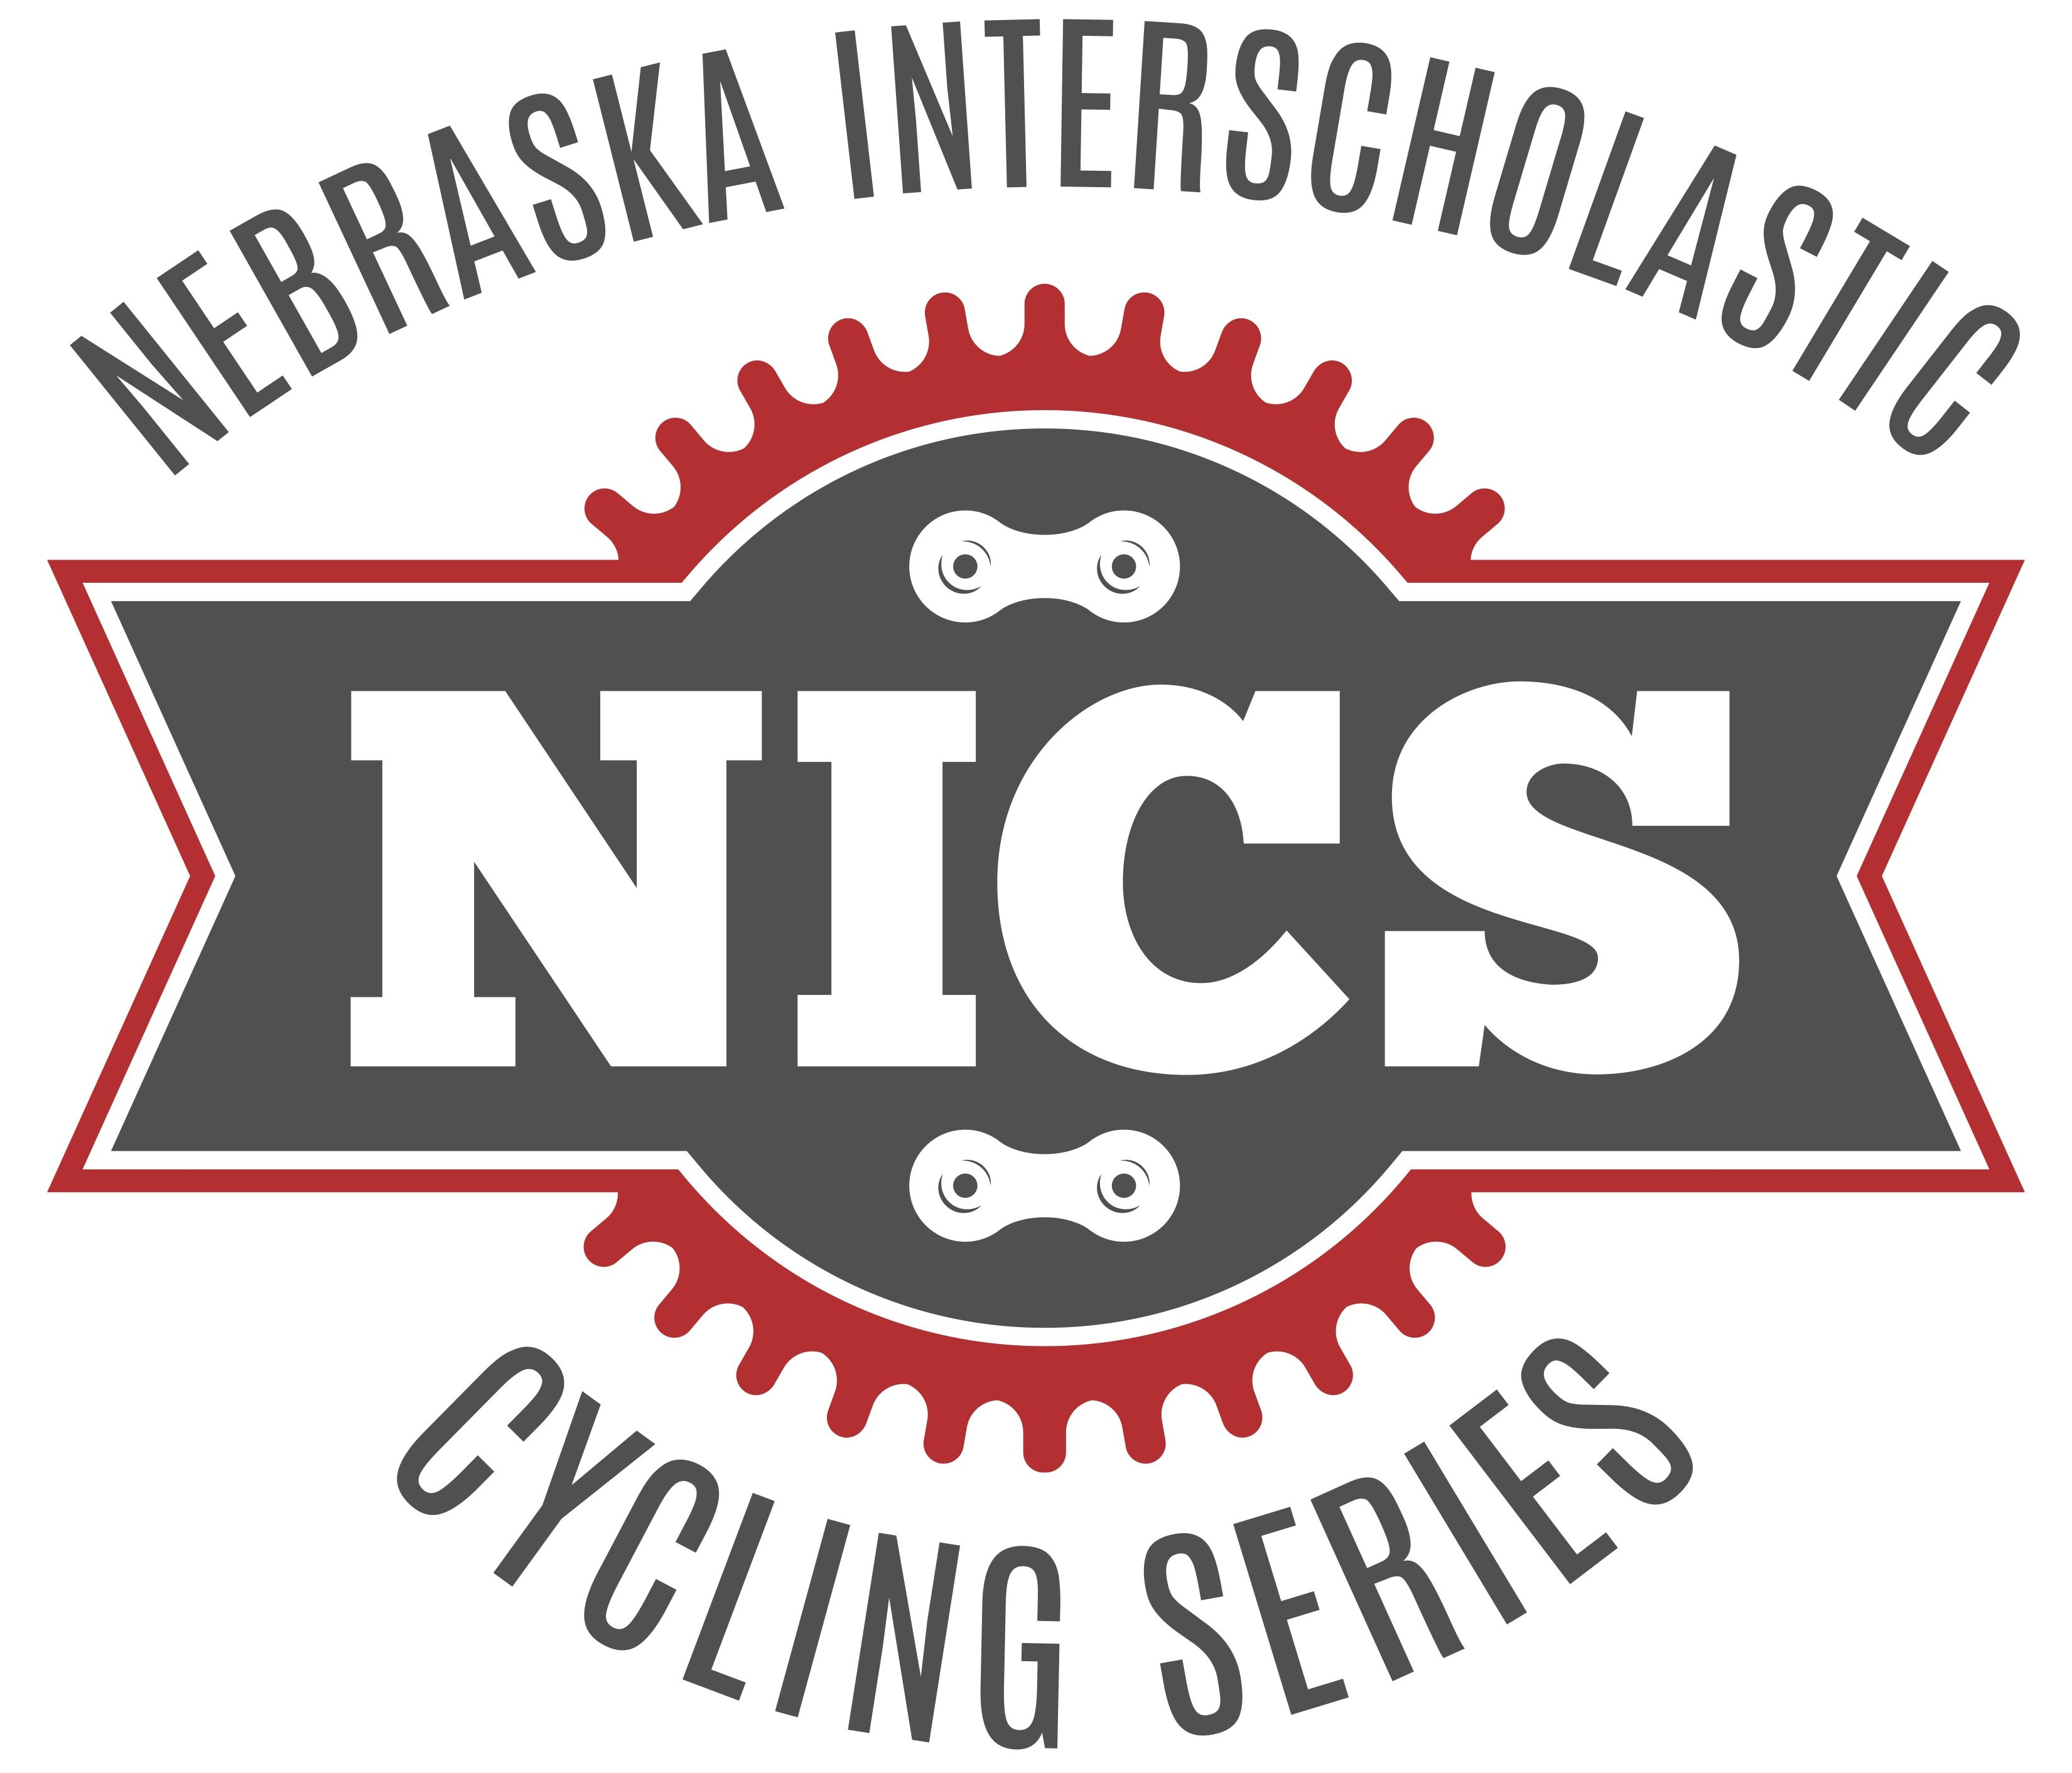 Nebraska Interscholastic Cycling Series